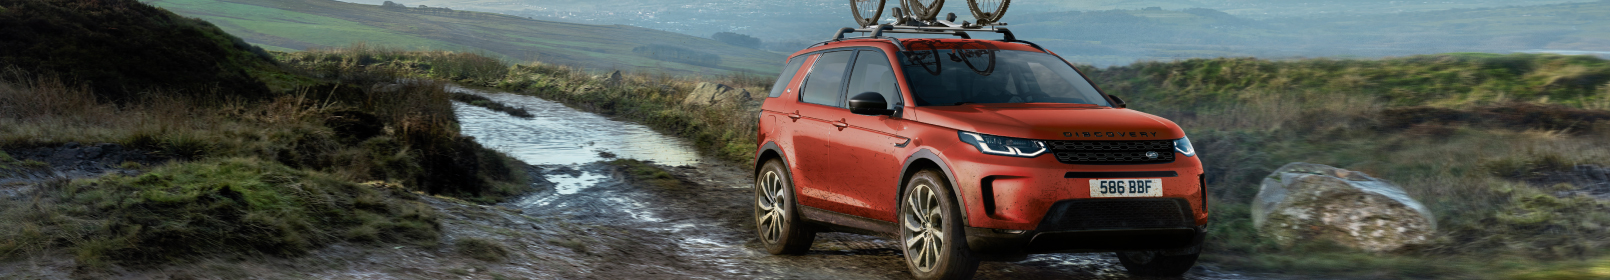 Land Rover September Sales Event